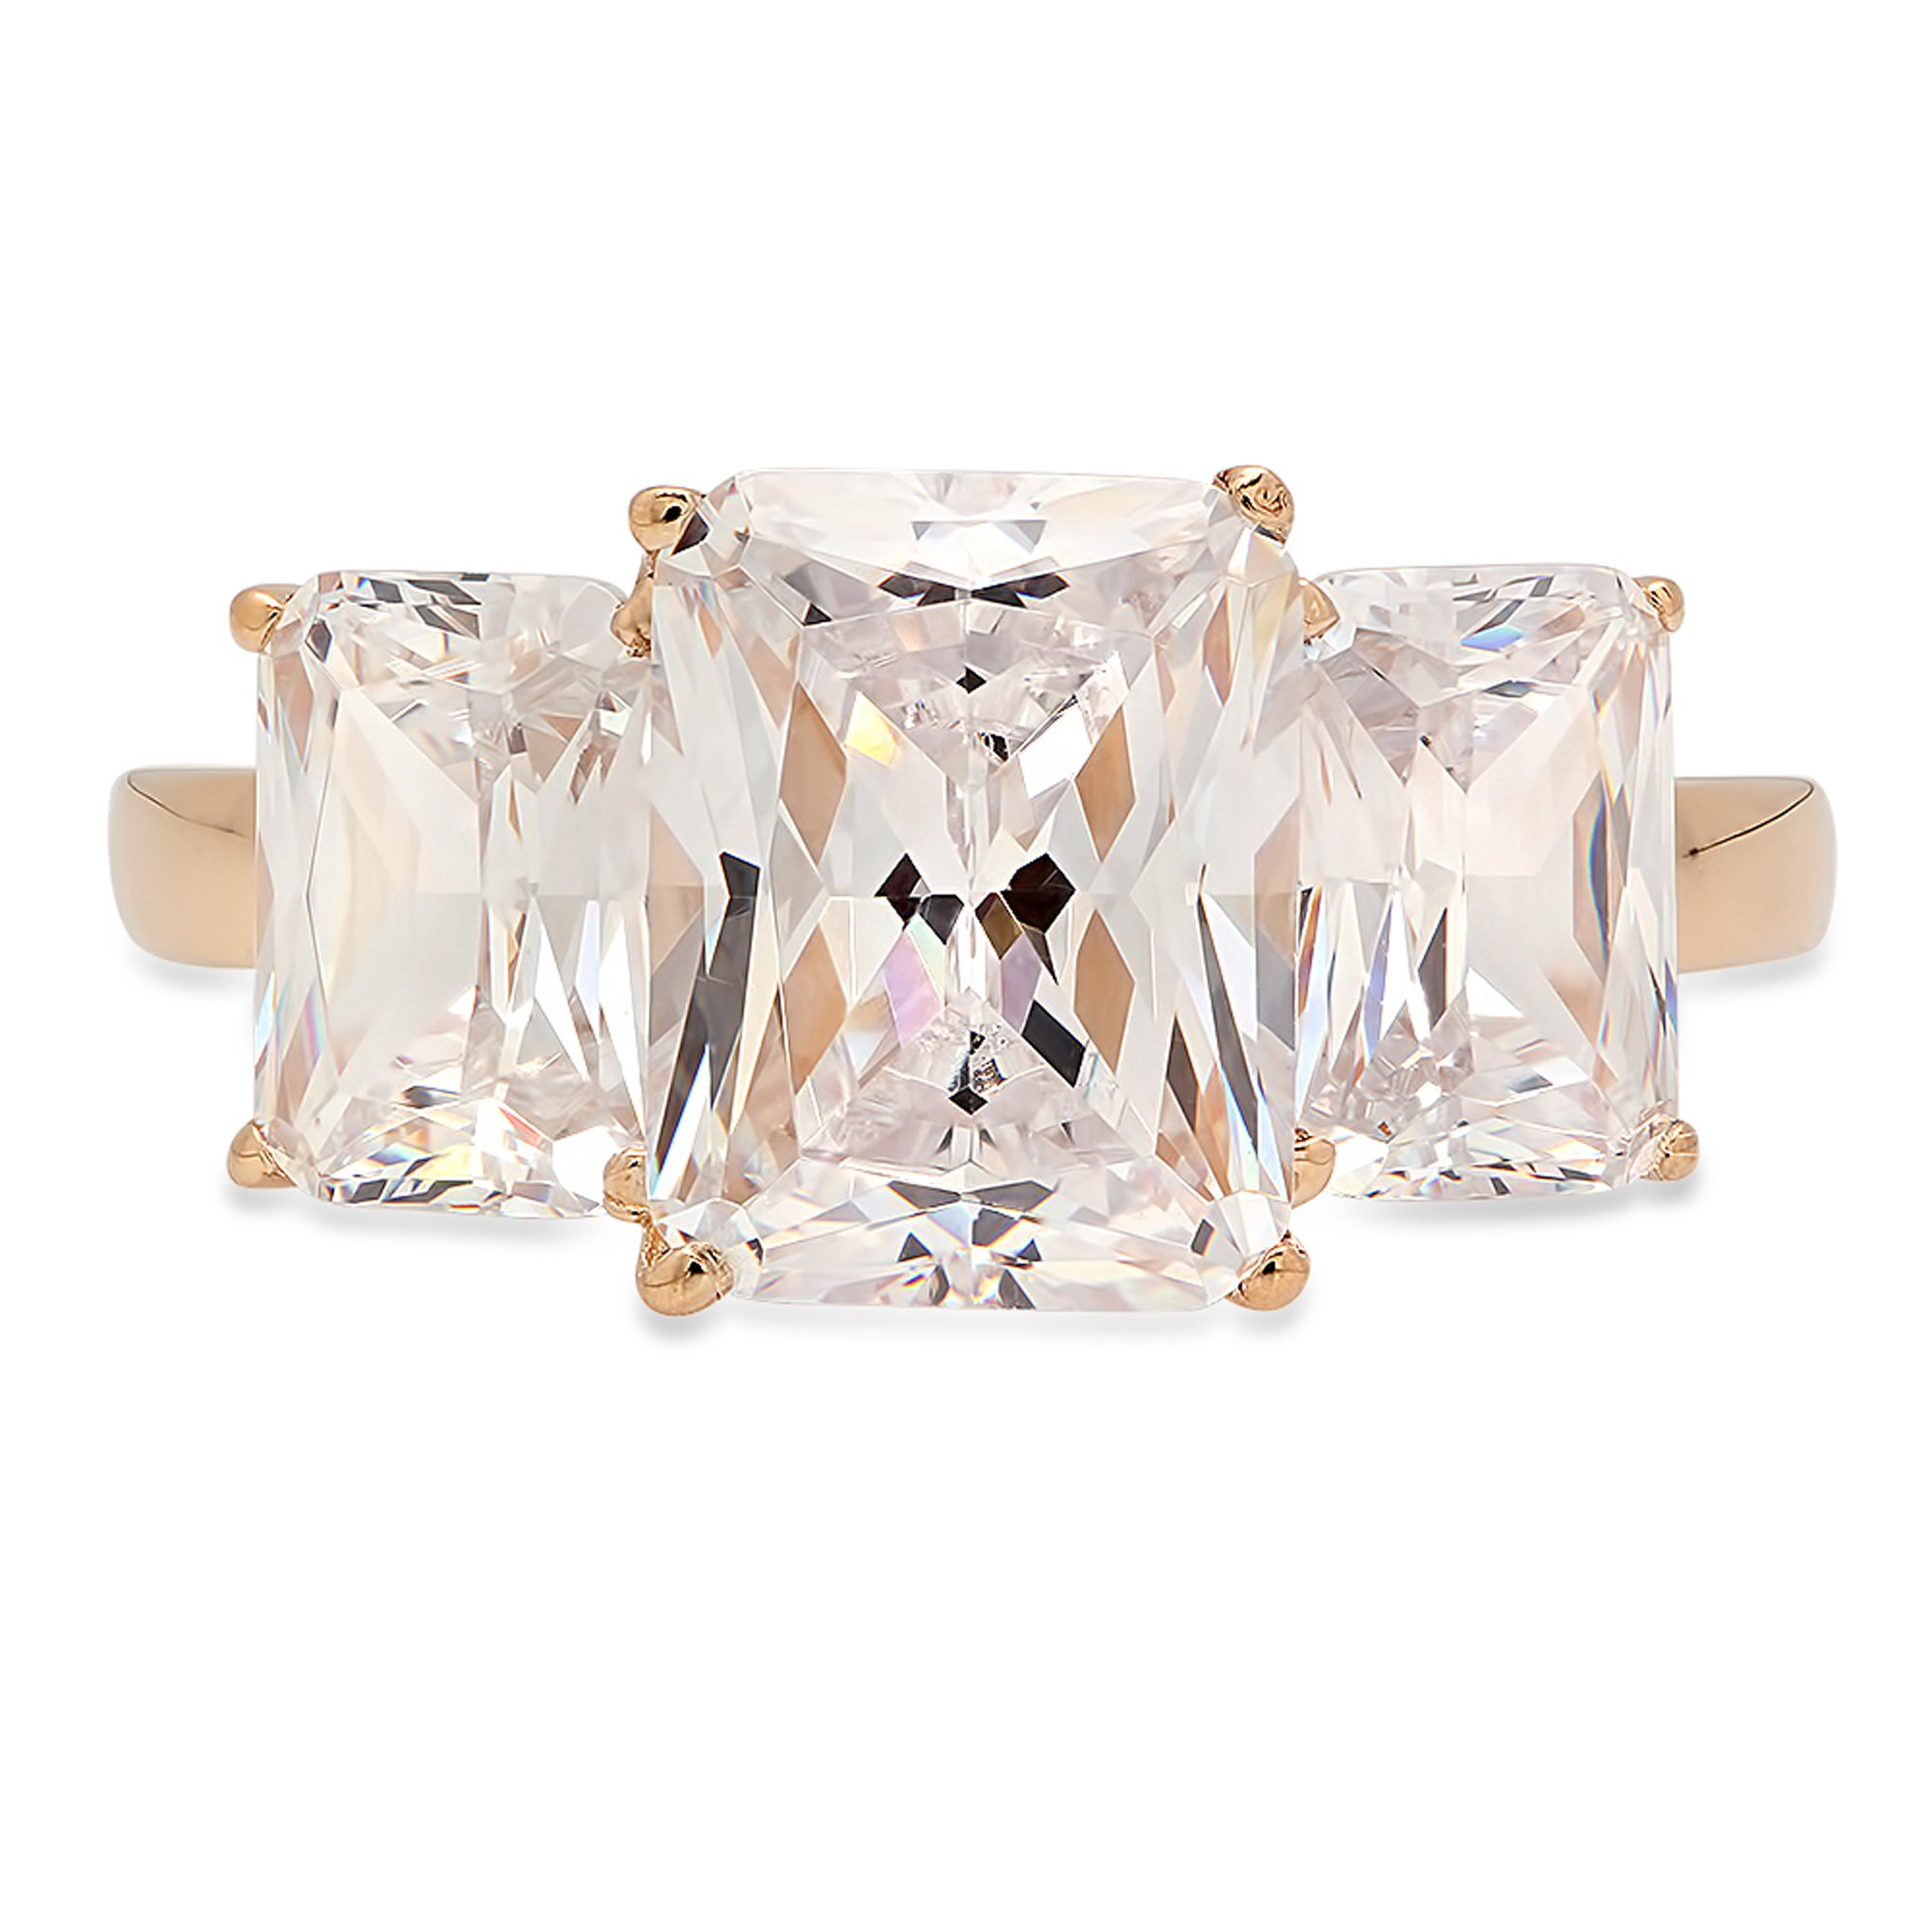 Clara Pucci 4.20ct Three Stone Emerald Cut Solitaire Promise Ring Engagement Wedding Anniversary Band 14K Yellow Gold, Size 7